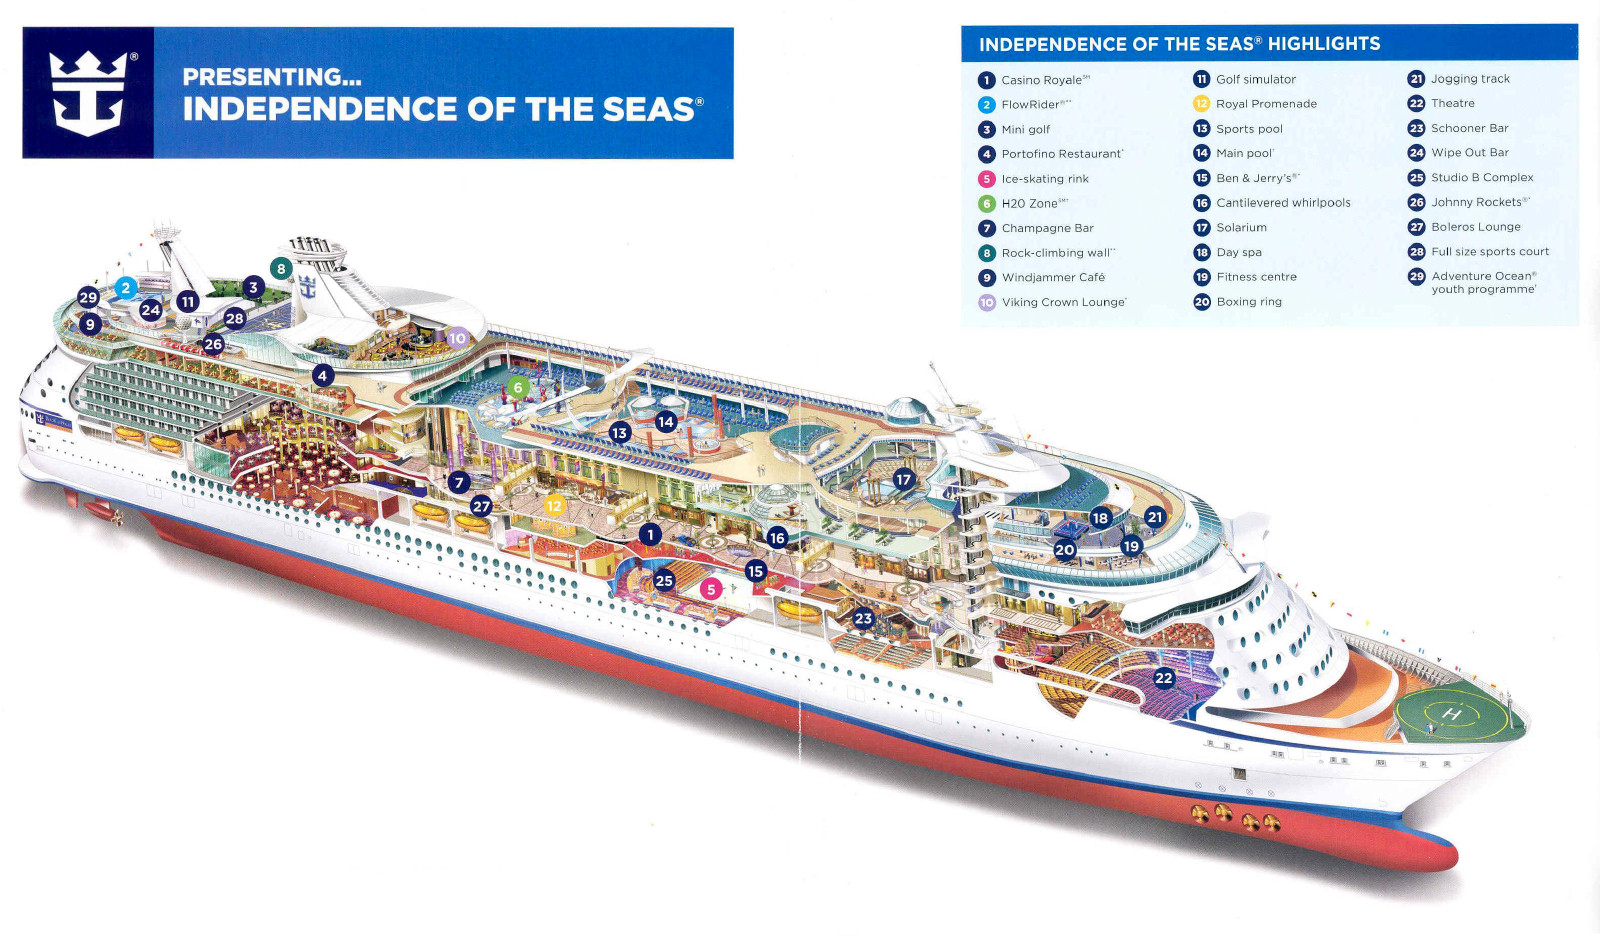 Independence Of The Seas Gallery - Cruise ship brochure